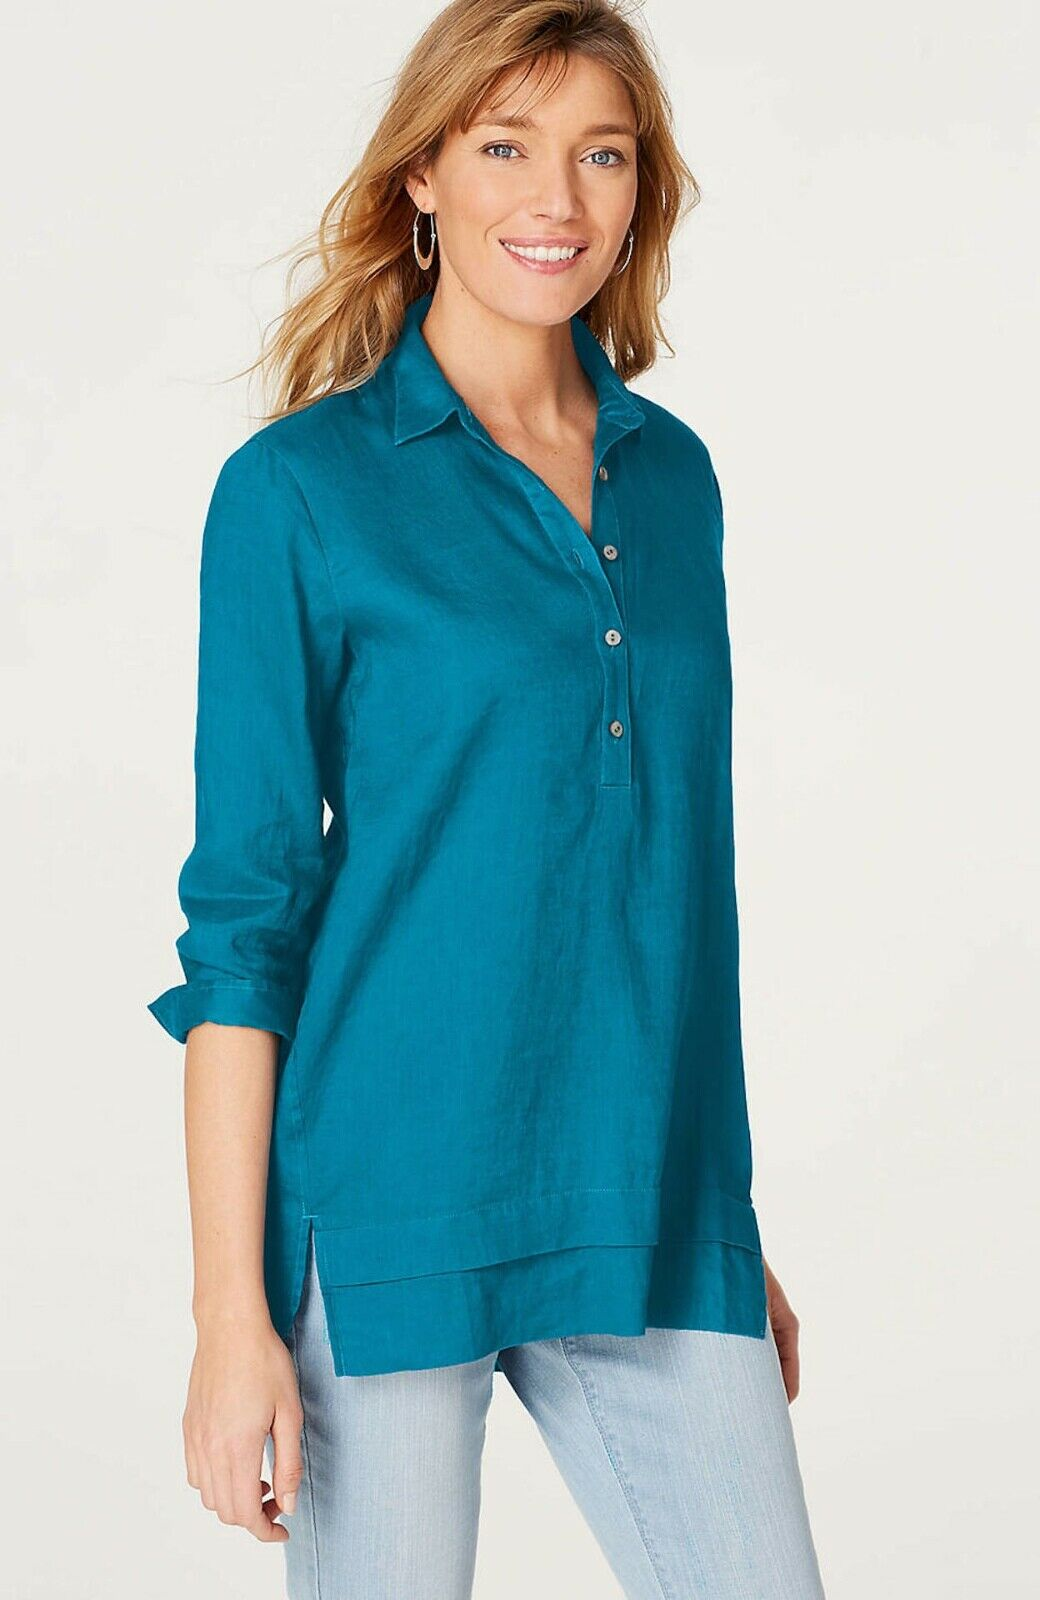 J. Jill - 3X(Plus) - Very Pretty Tahitian Teal Linen Relaxed Tunic - NWT